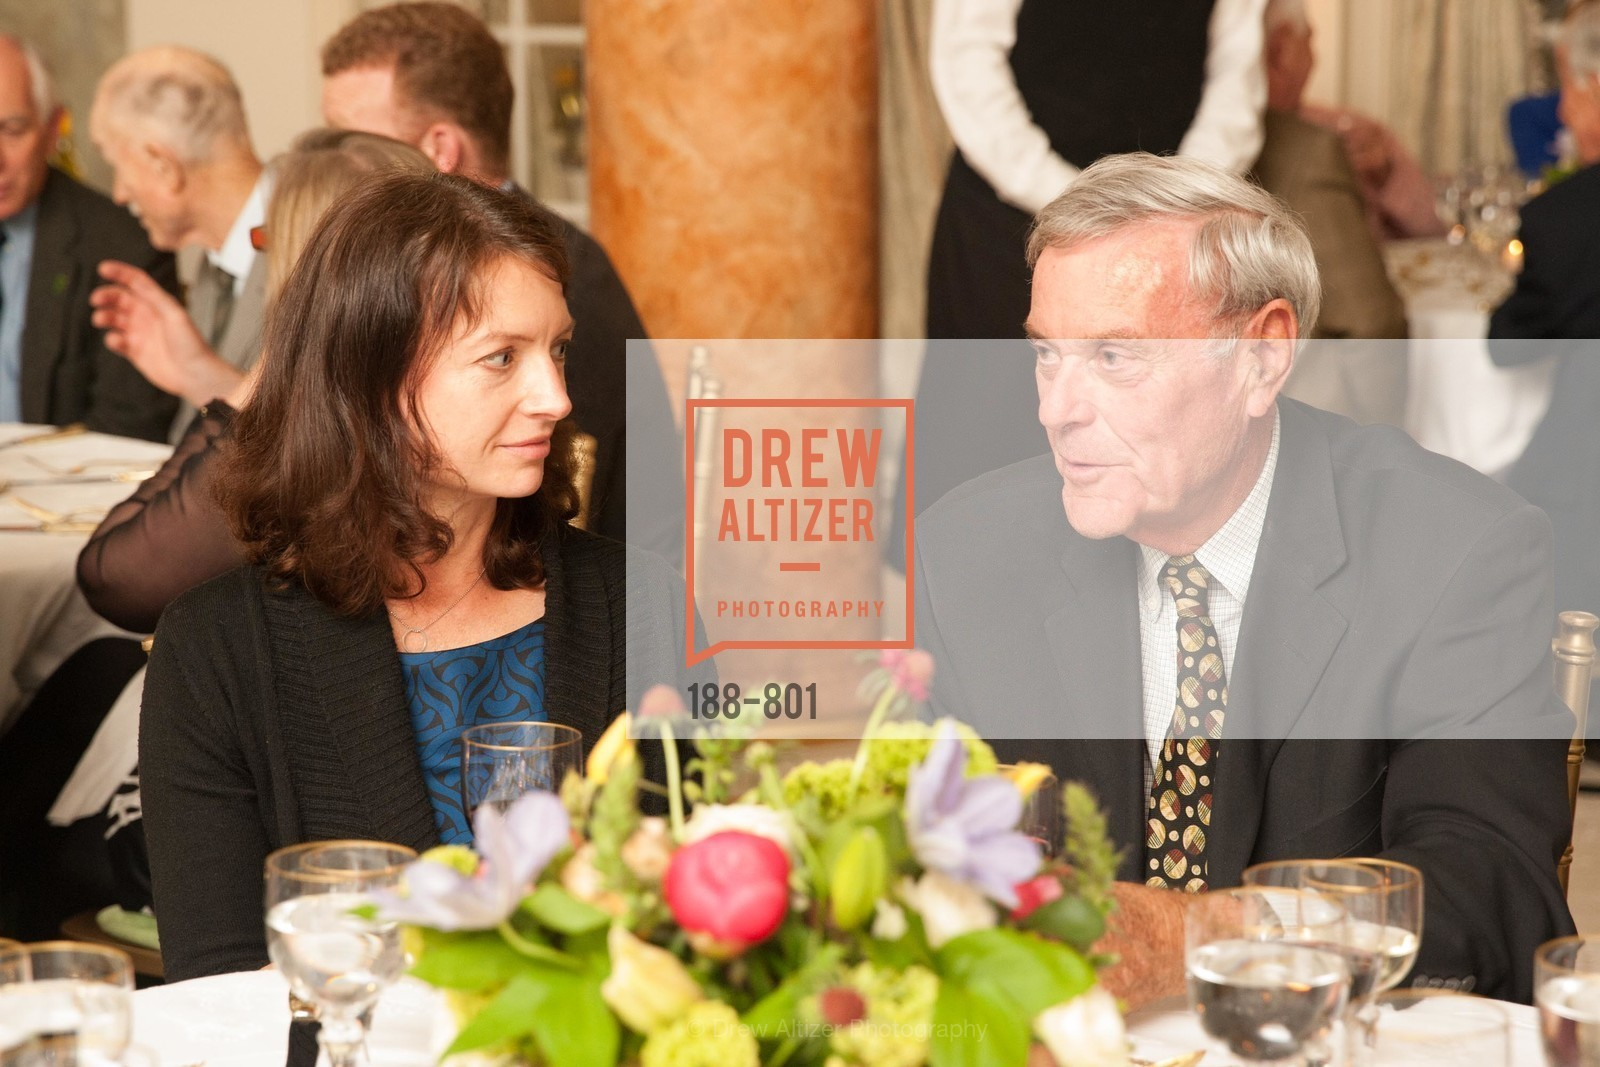 Rachel Roberts, Clem Shute, GETTY Hosts Leakey Foundation Dinner, US, April 23rd, 2015,Drew Altizer, Drew Altizer Photography, full-service agency, private events, San Francisco photographer, photographer california